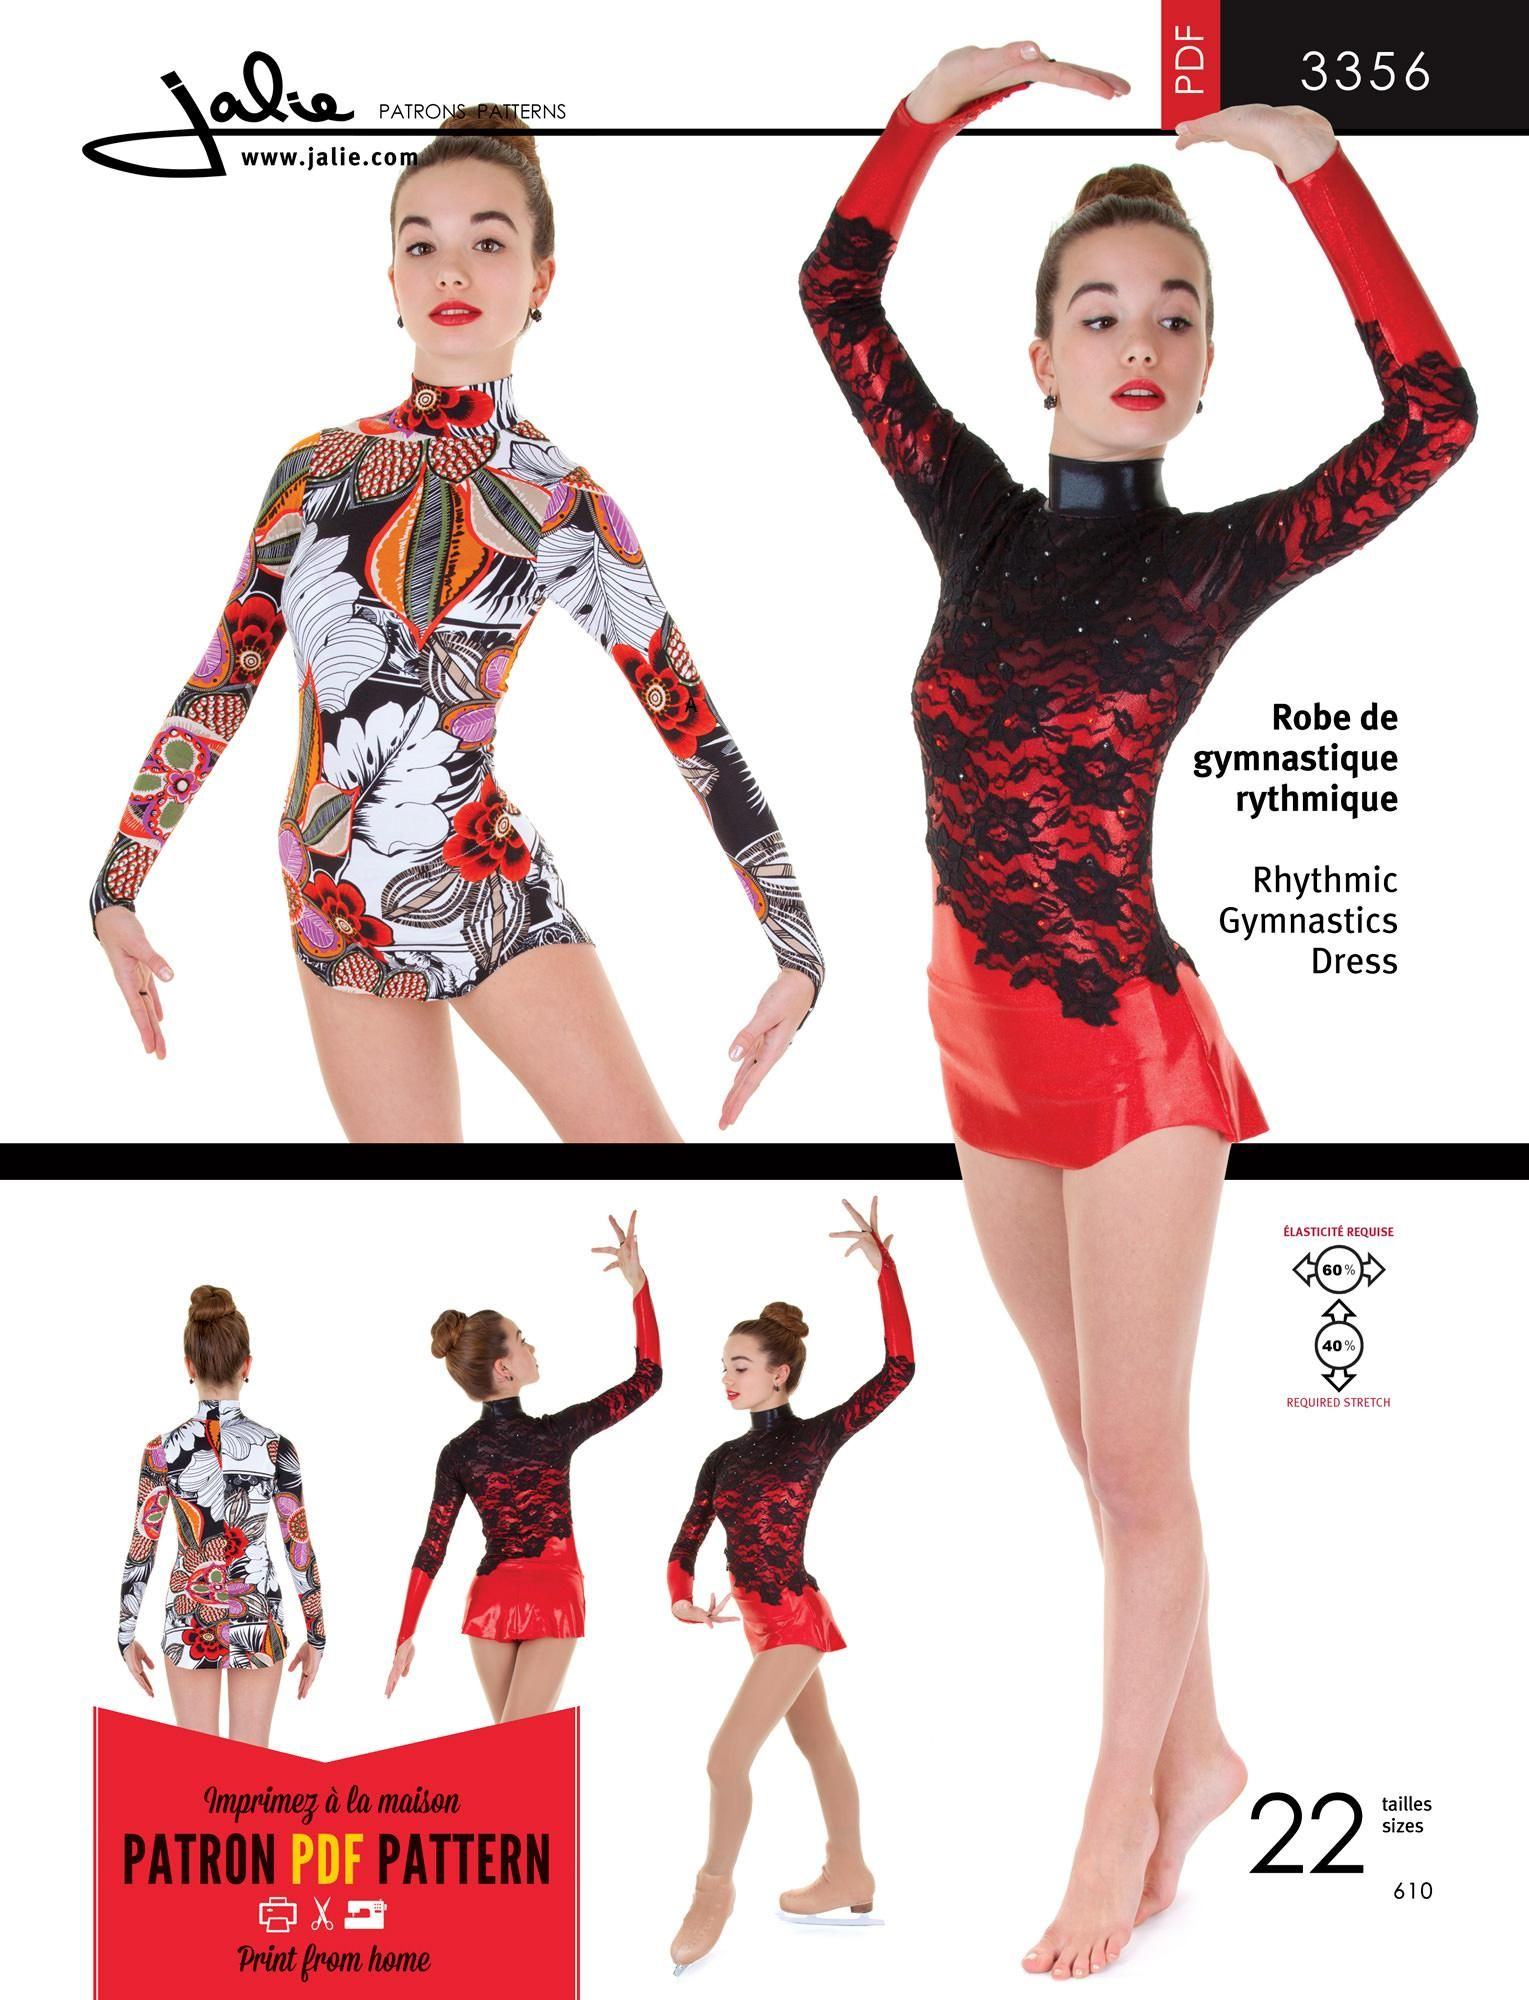 db5bff0c7153 Jalie 3356 - Rhythmic Gymnastics Dress PDF Pattern